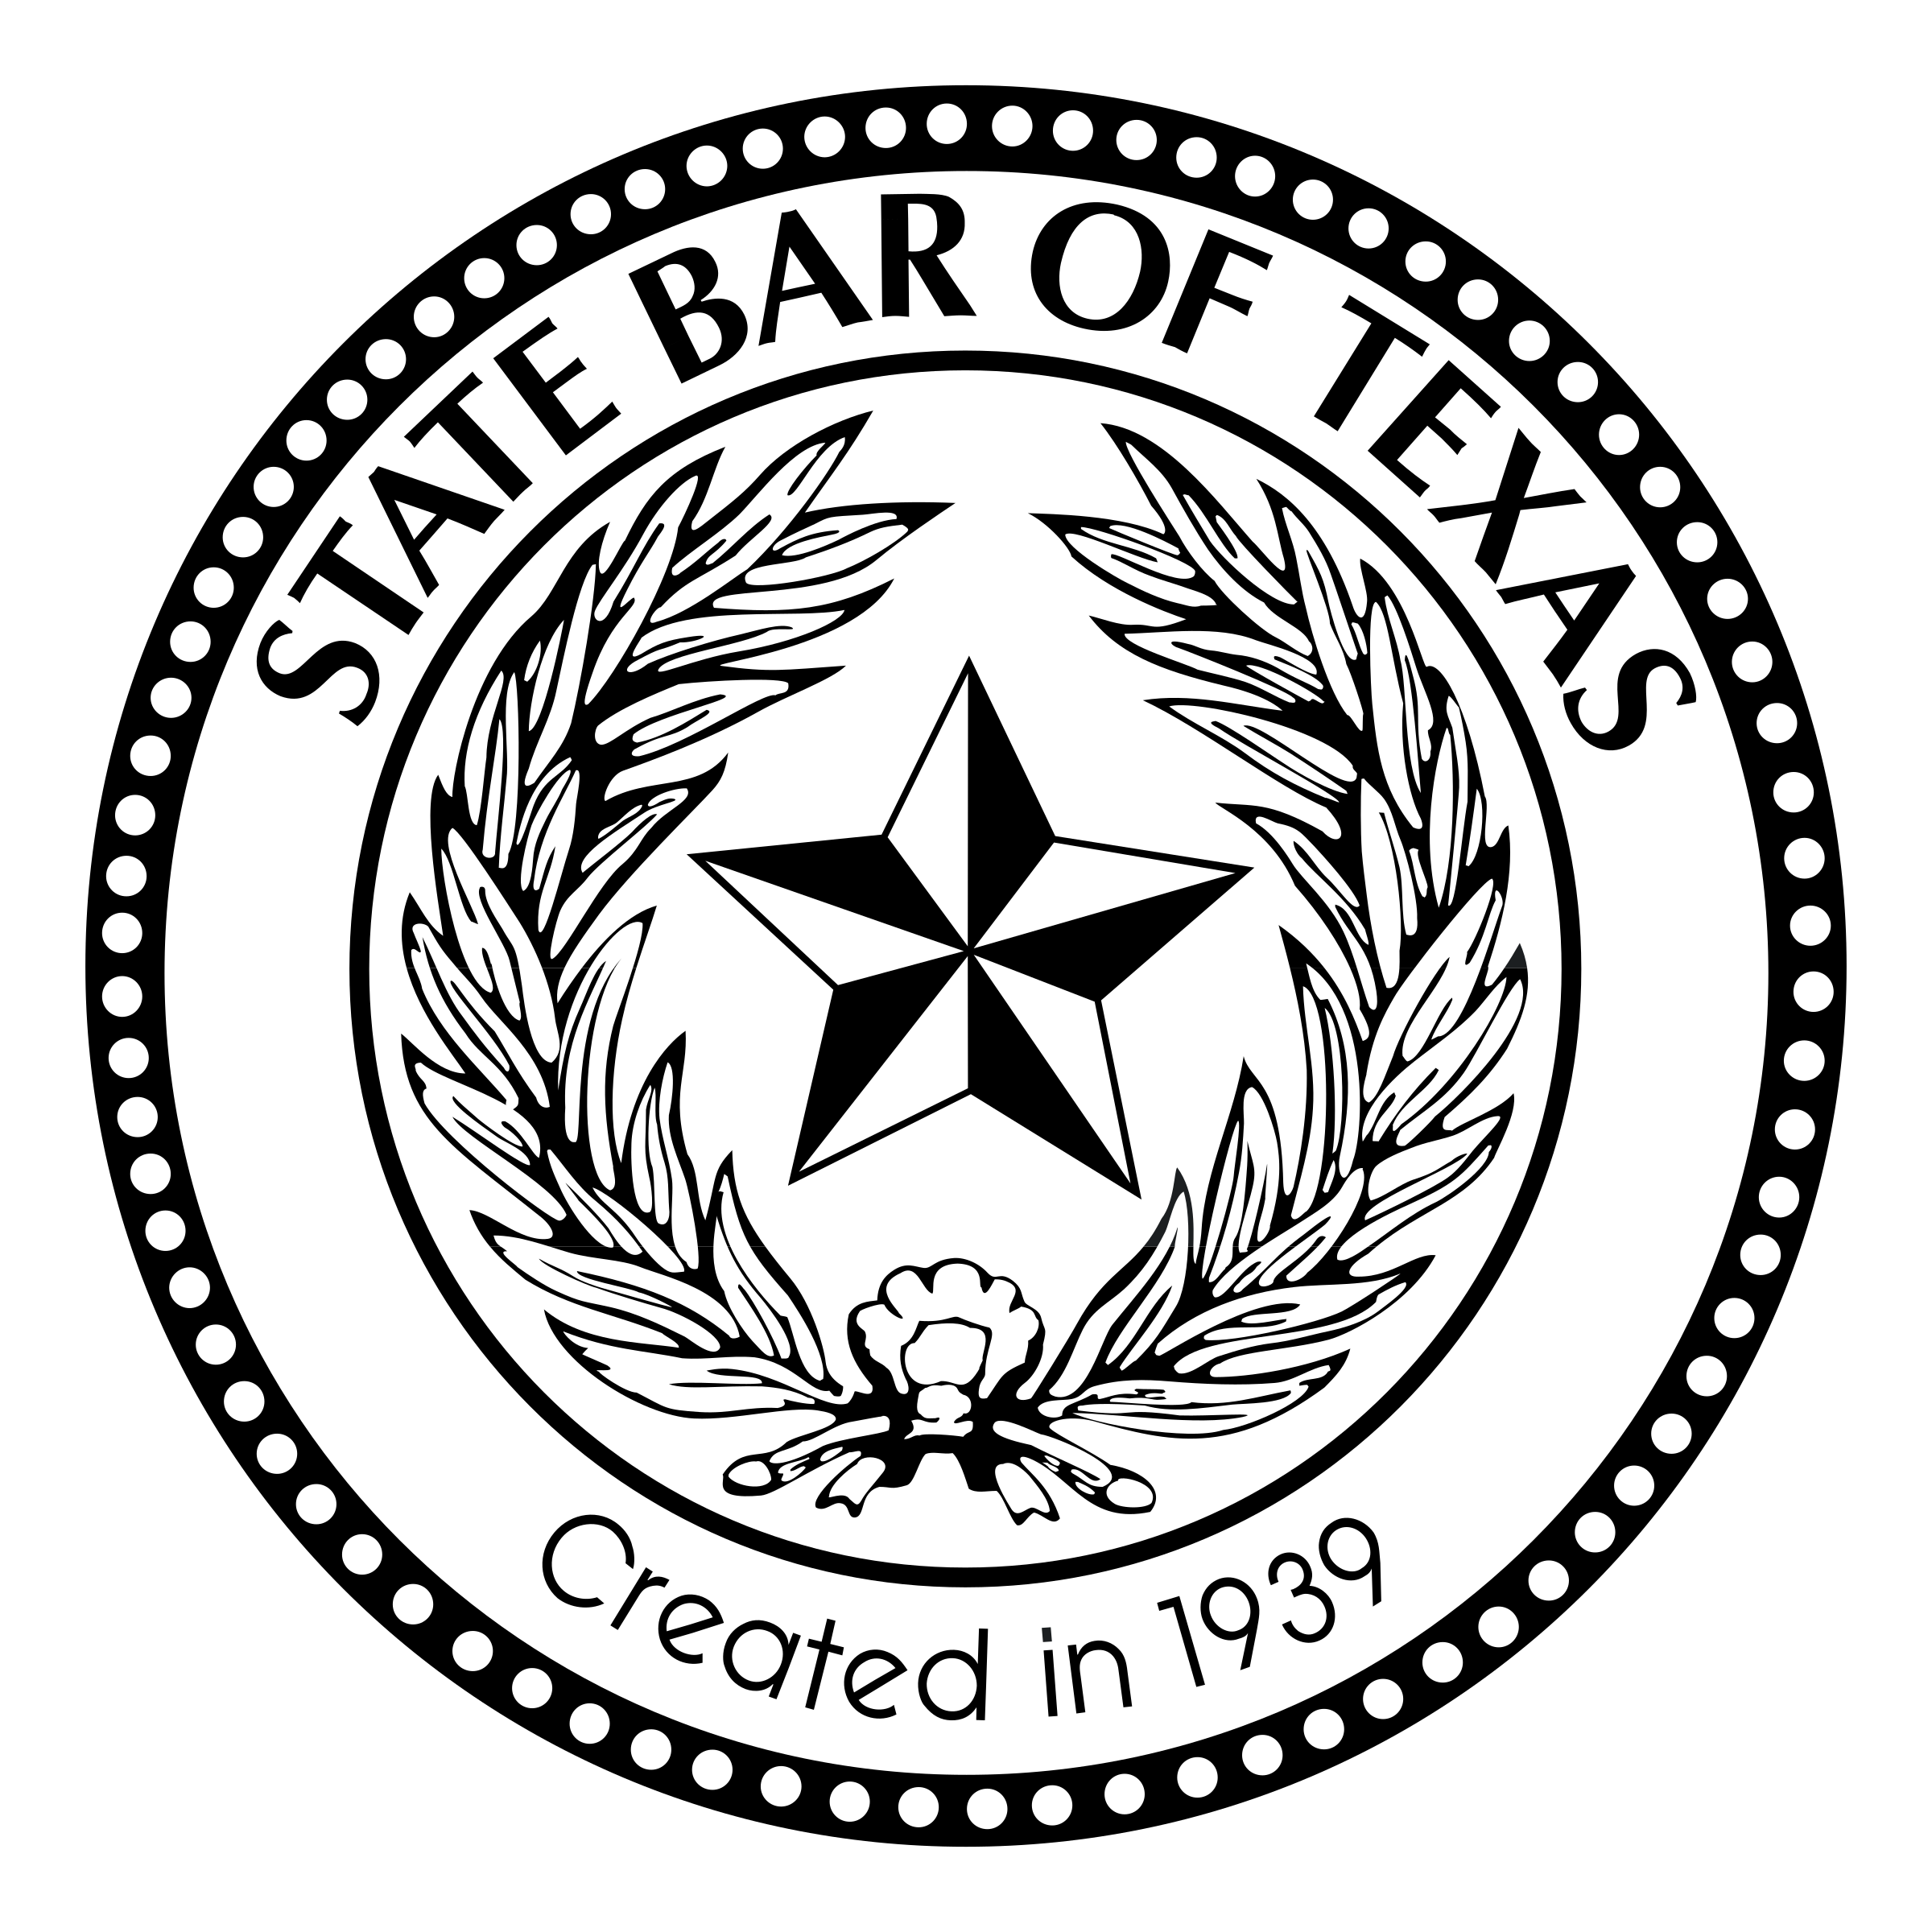 State Bar of Texas Logo PNG Transparent & SVG Vector.